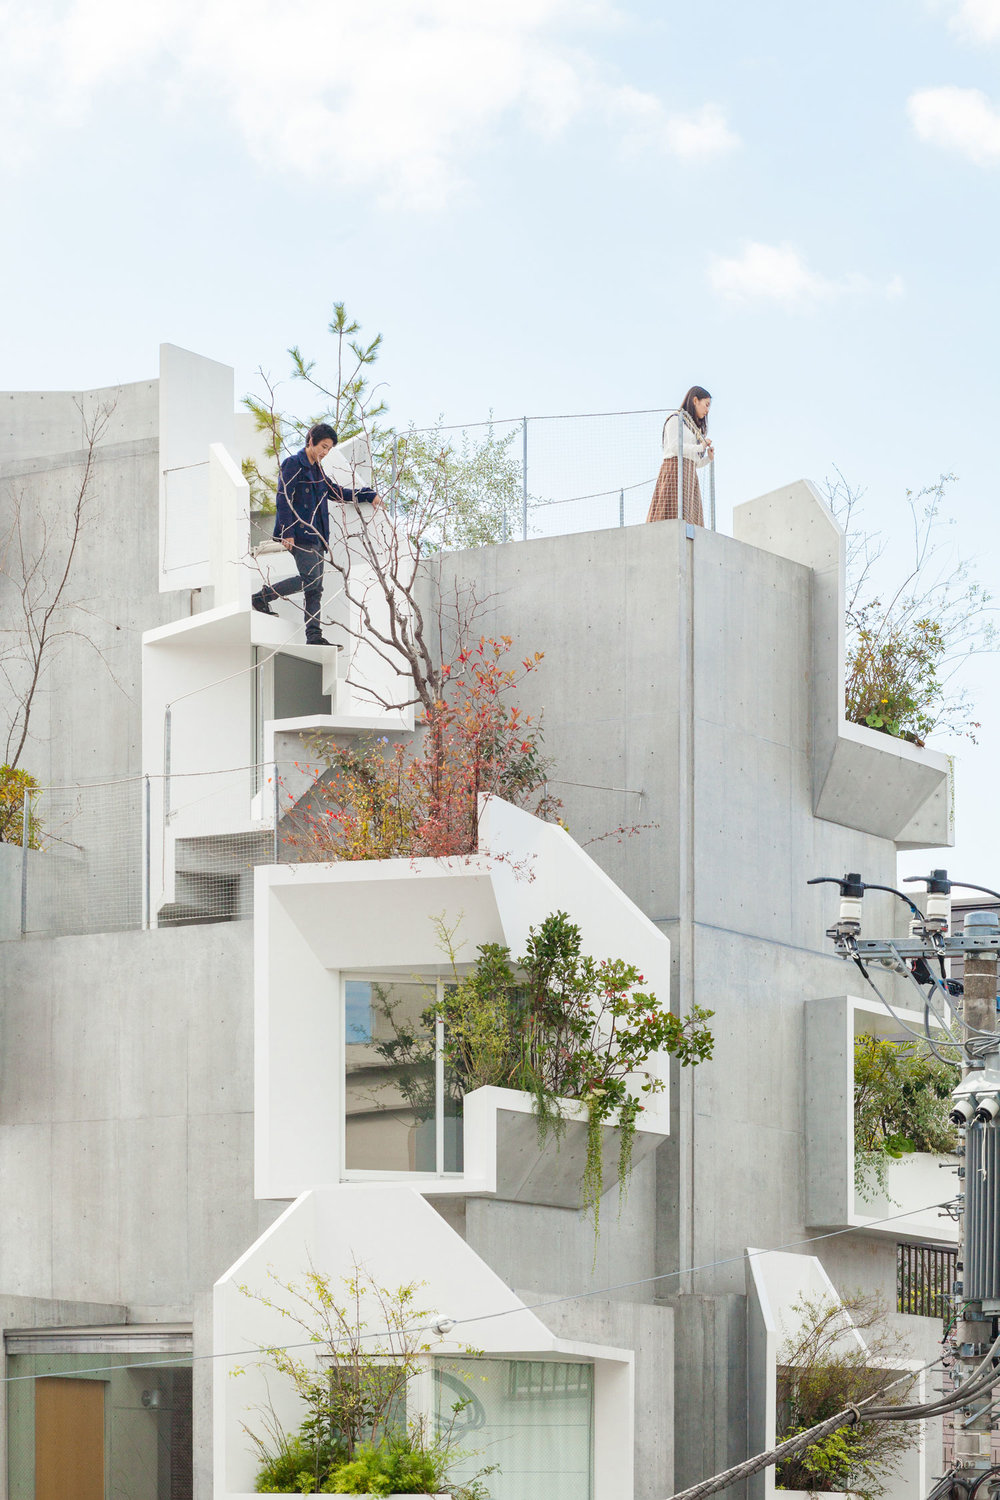 Tree-ness-House-Toshima-Japan-by-Akihisa-Hirata-Yellowtrace-04.jpg